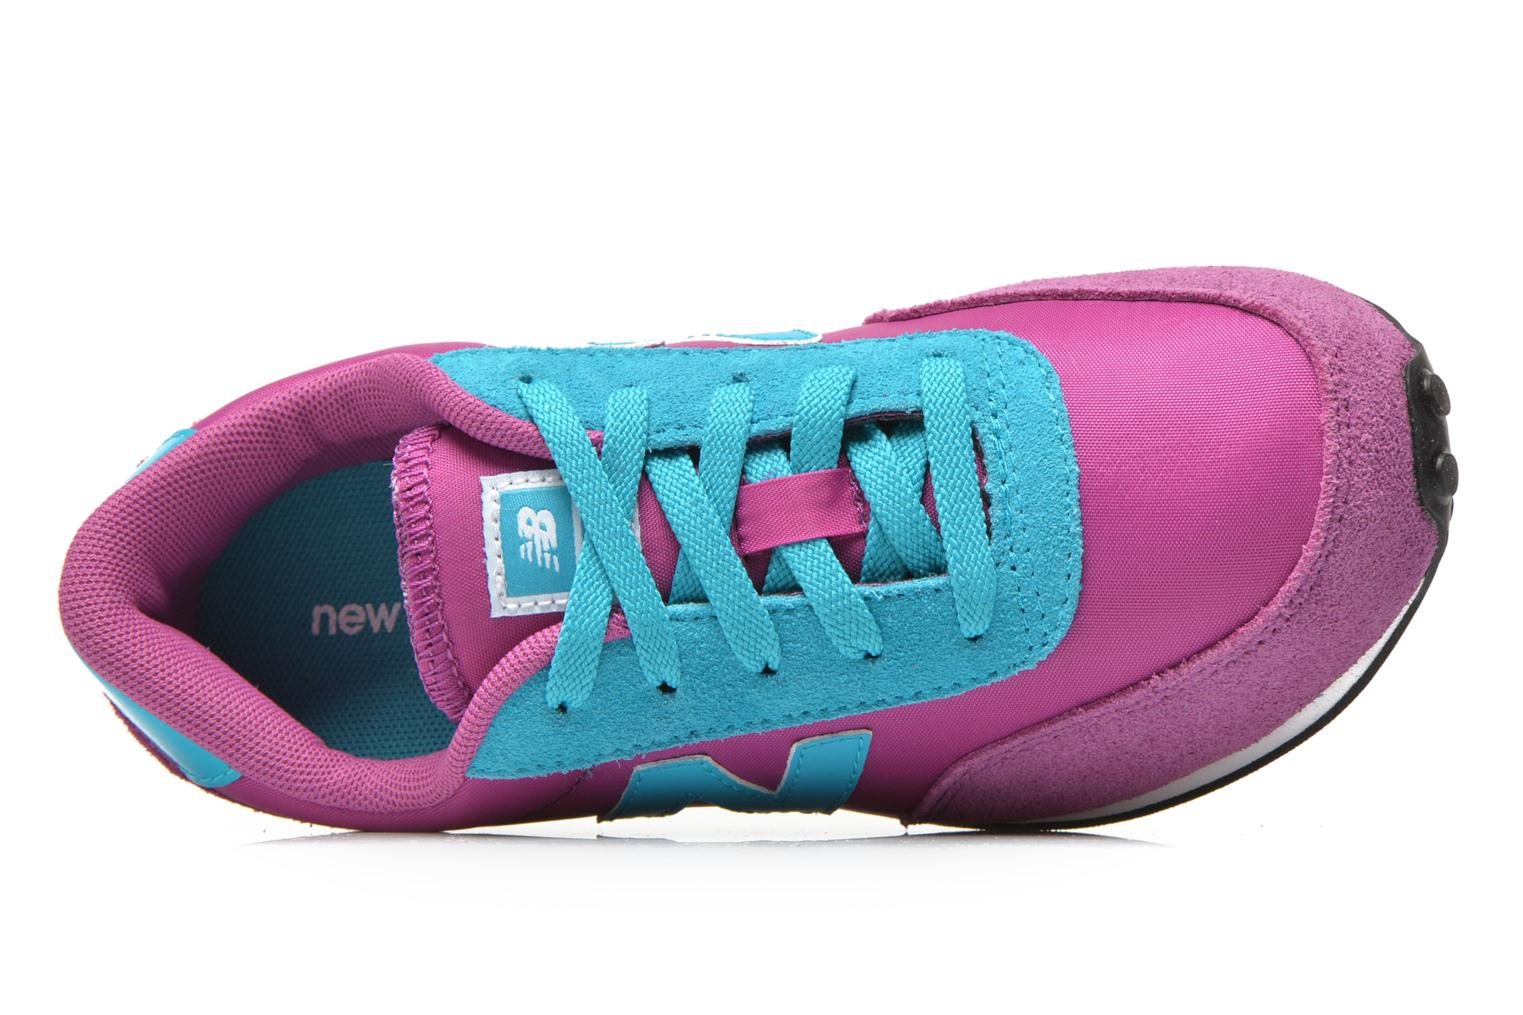 KL410 J pay pink/blue